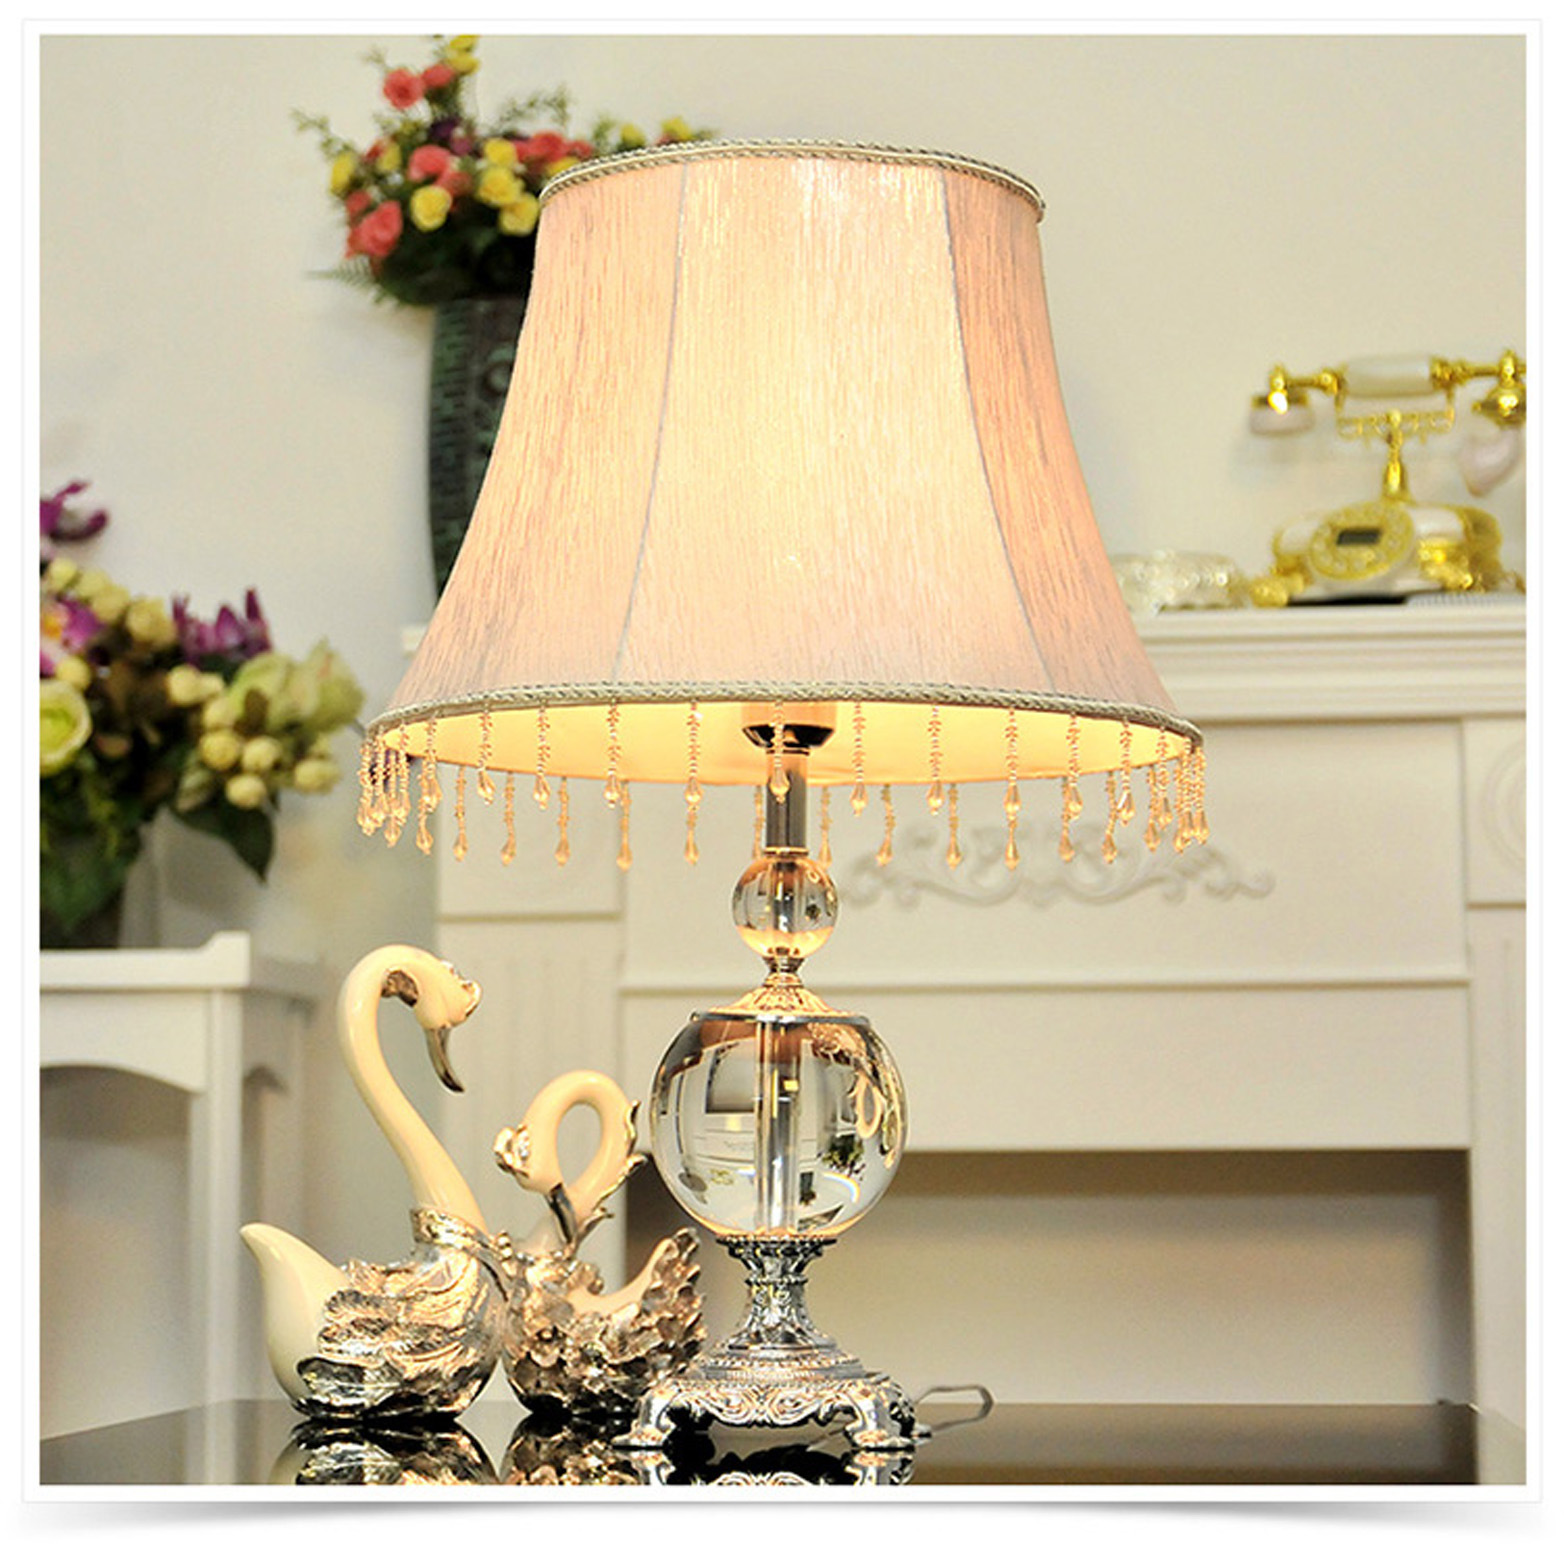 Table lamp design classic - Tuda 2017 New Classic Luxury Lighting Crystal Table Lamp For Living Room Bedroom Bedside Table Lamp